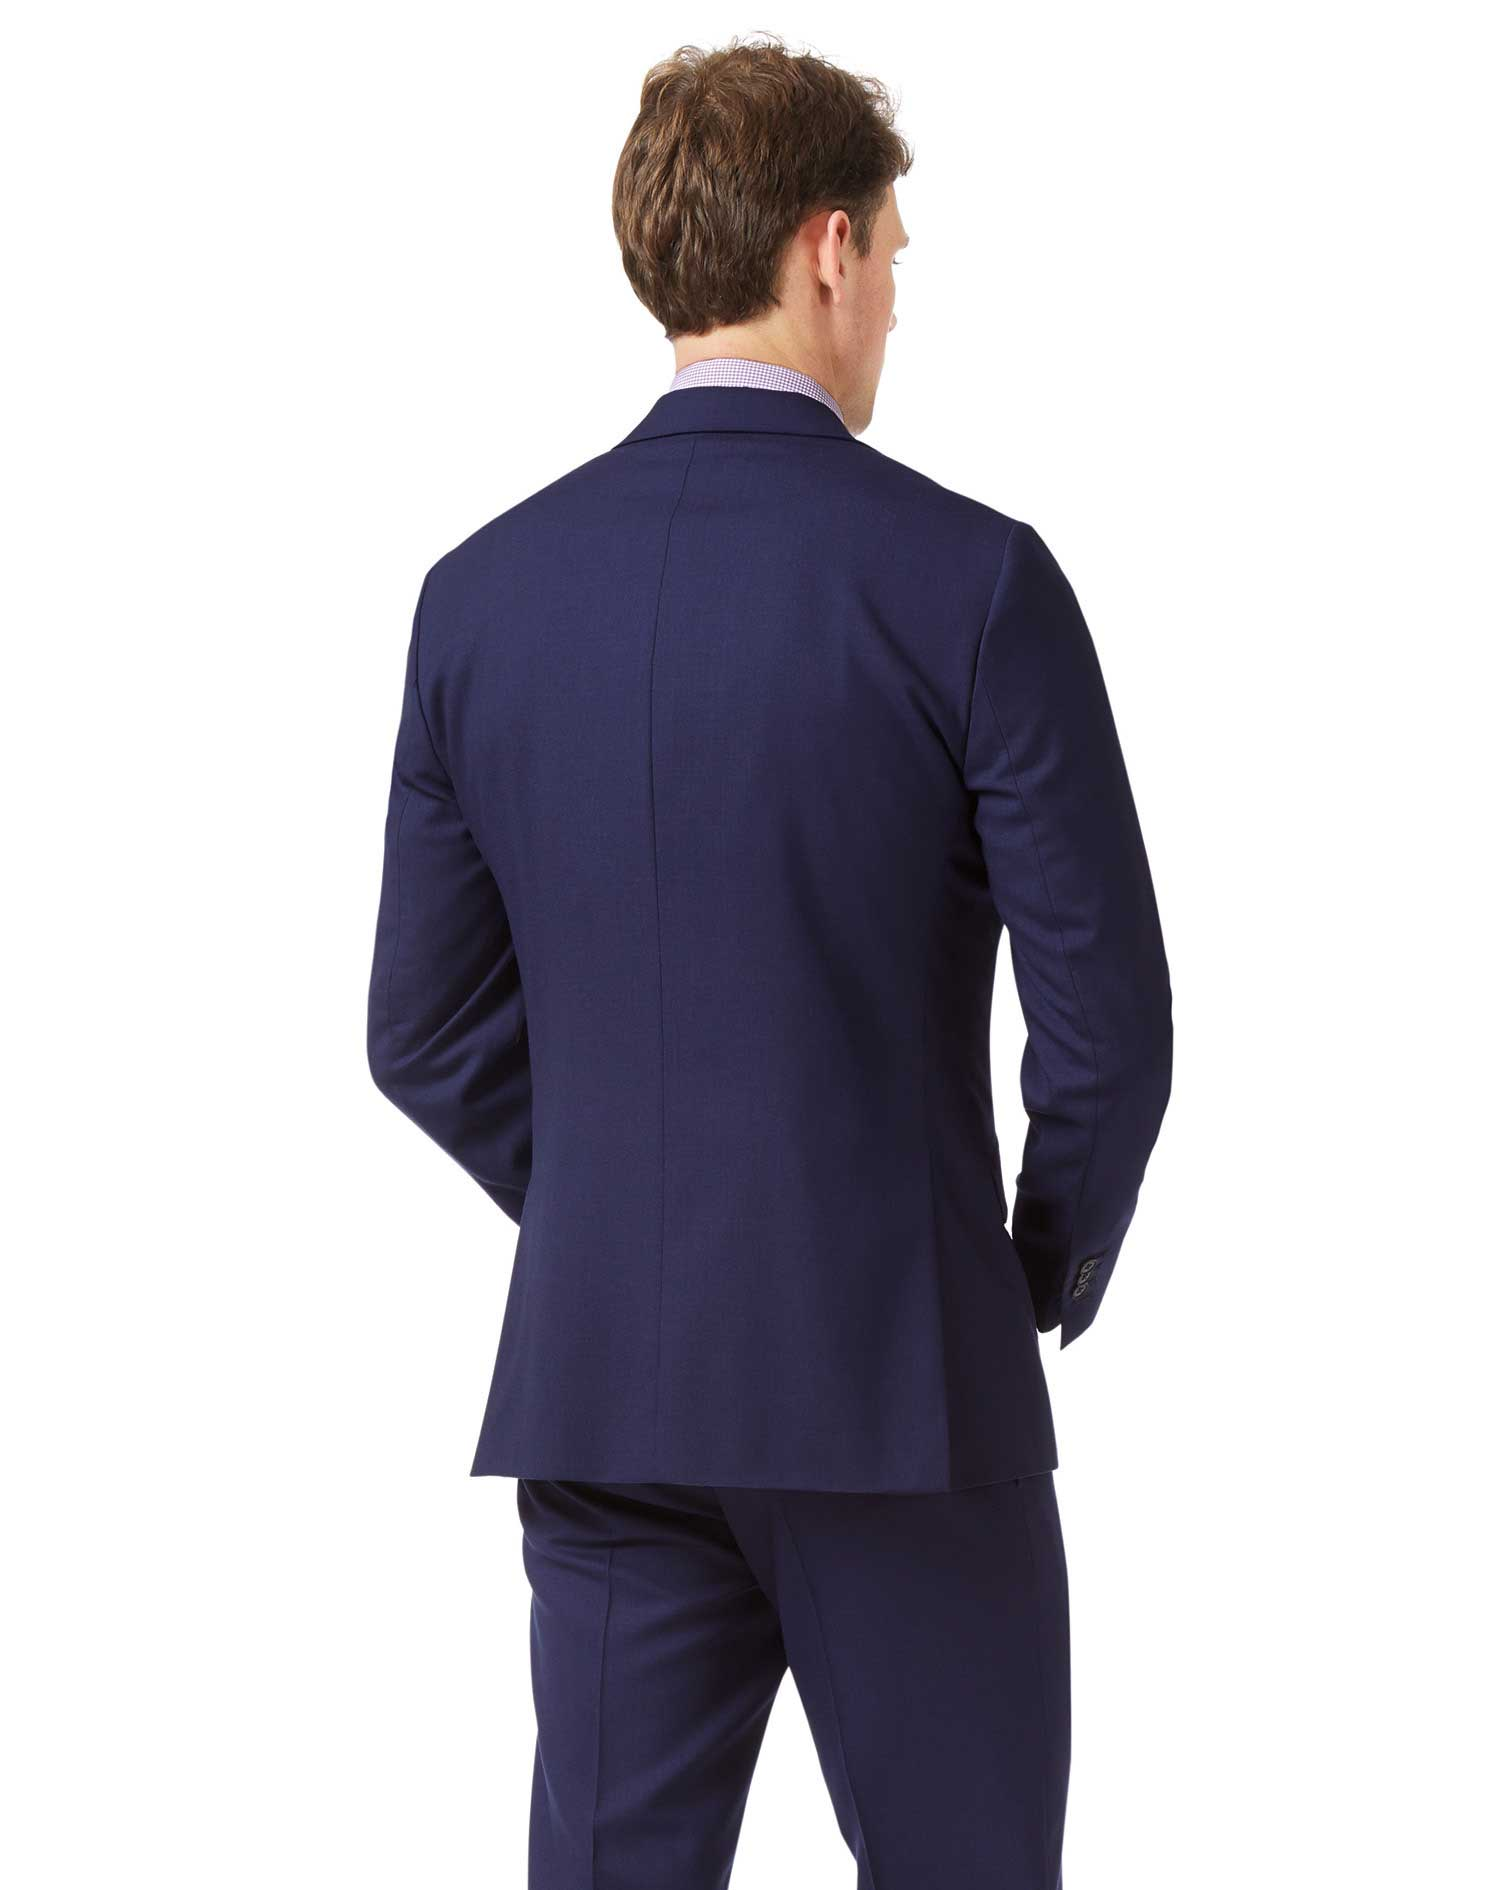 Royal blue slim fit merino business suit jacket